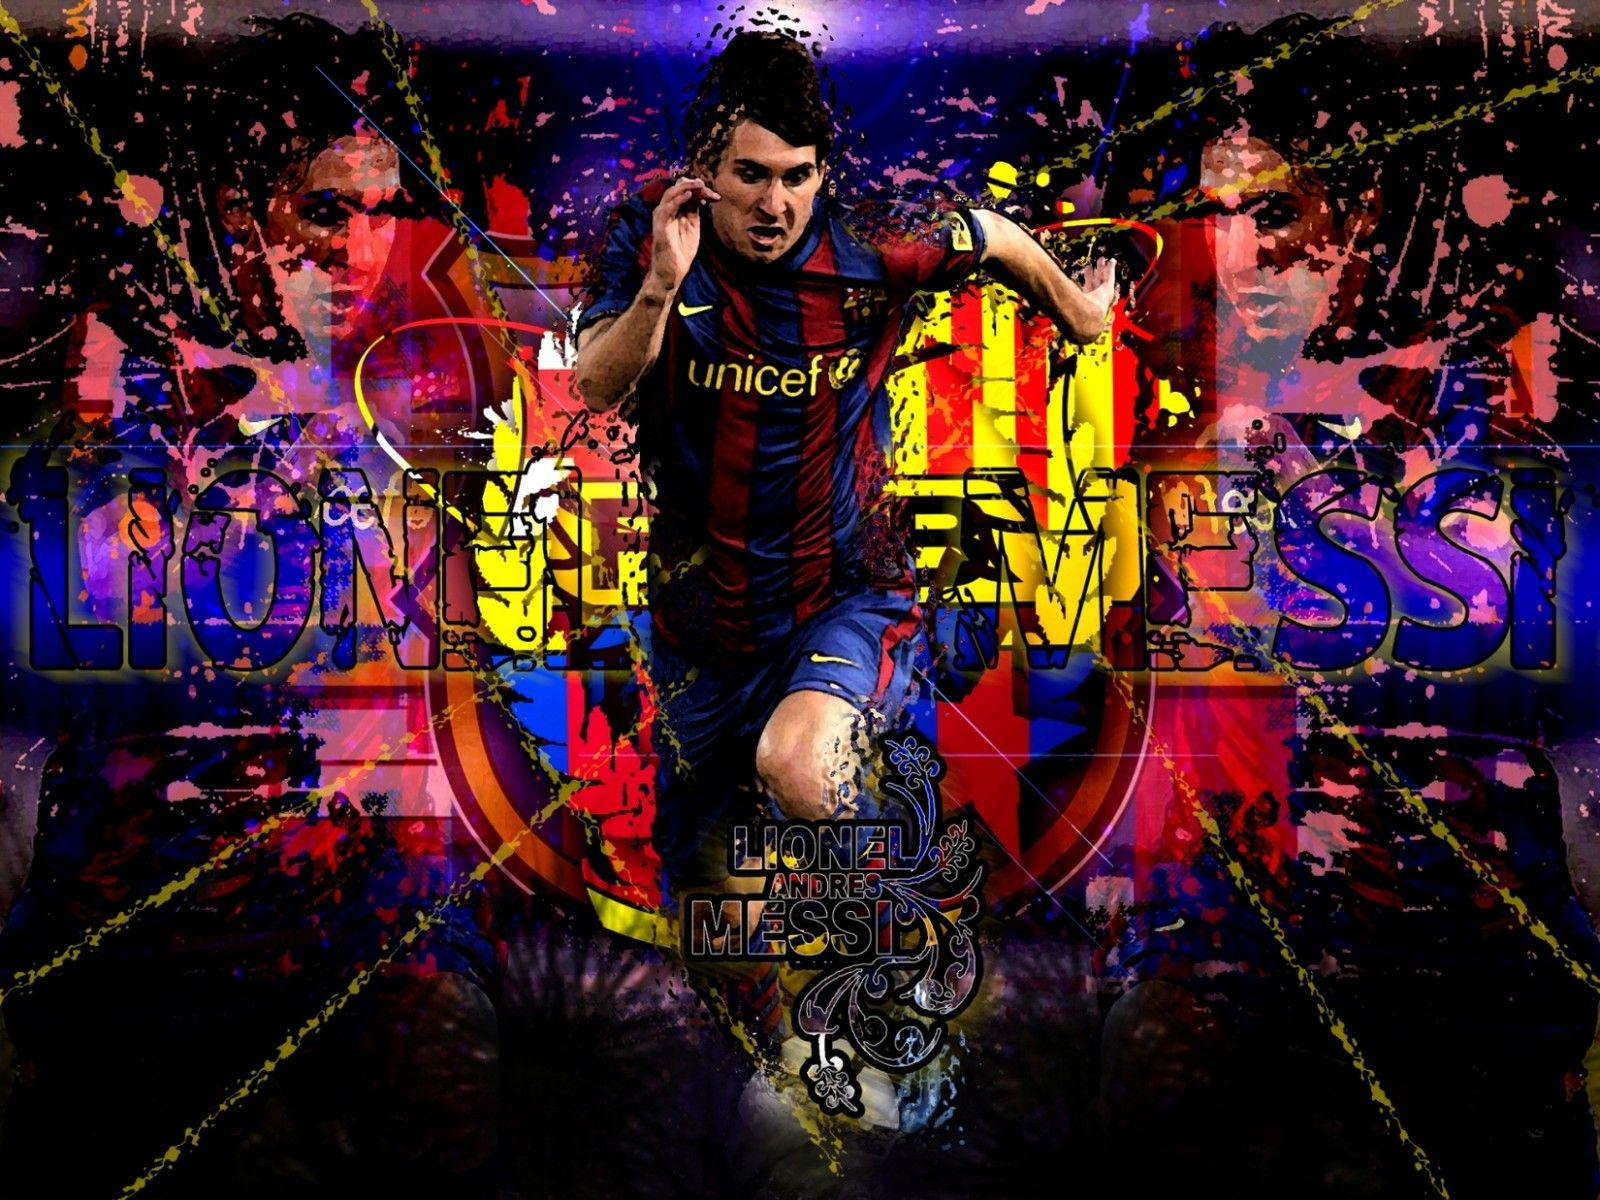 Fondos De Pantalla Del Fútbol Club Barcelona Wallpapers: Fc Barcelona Messi HD Wallpaper